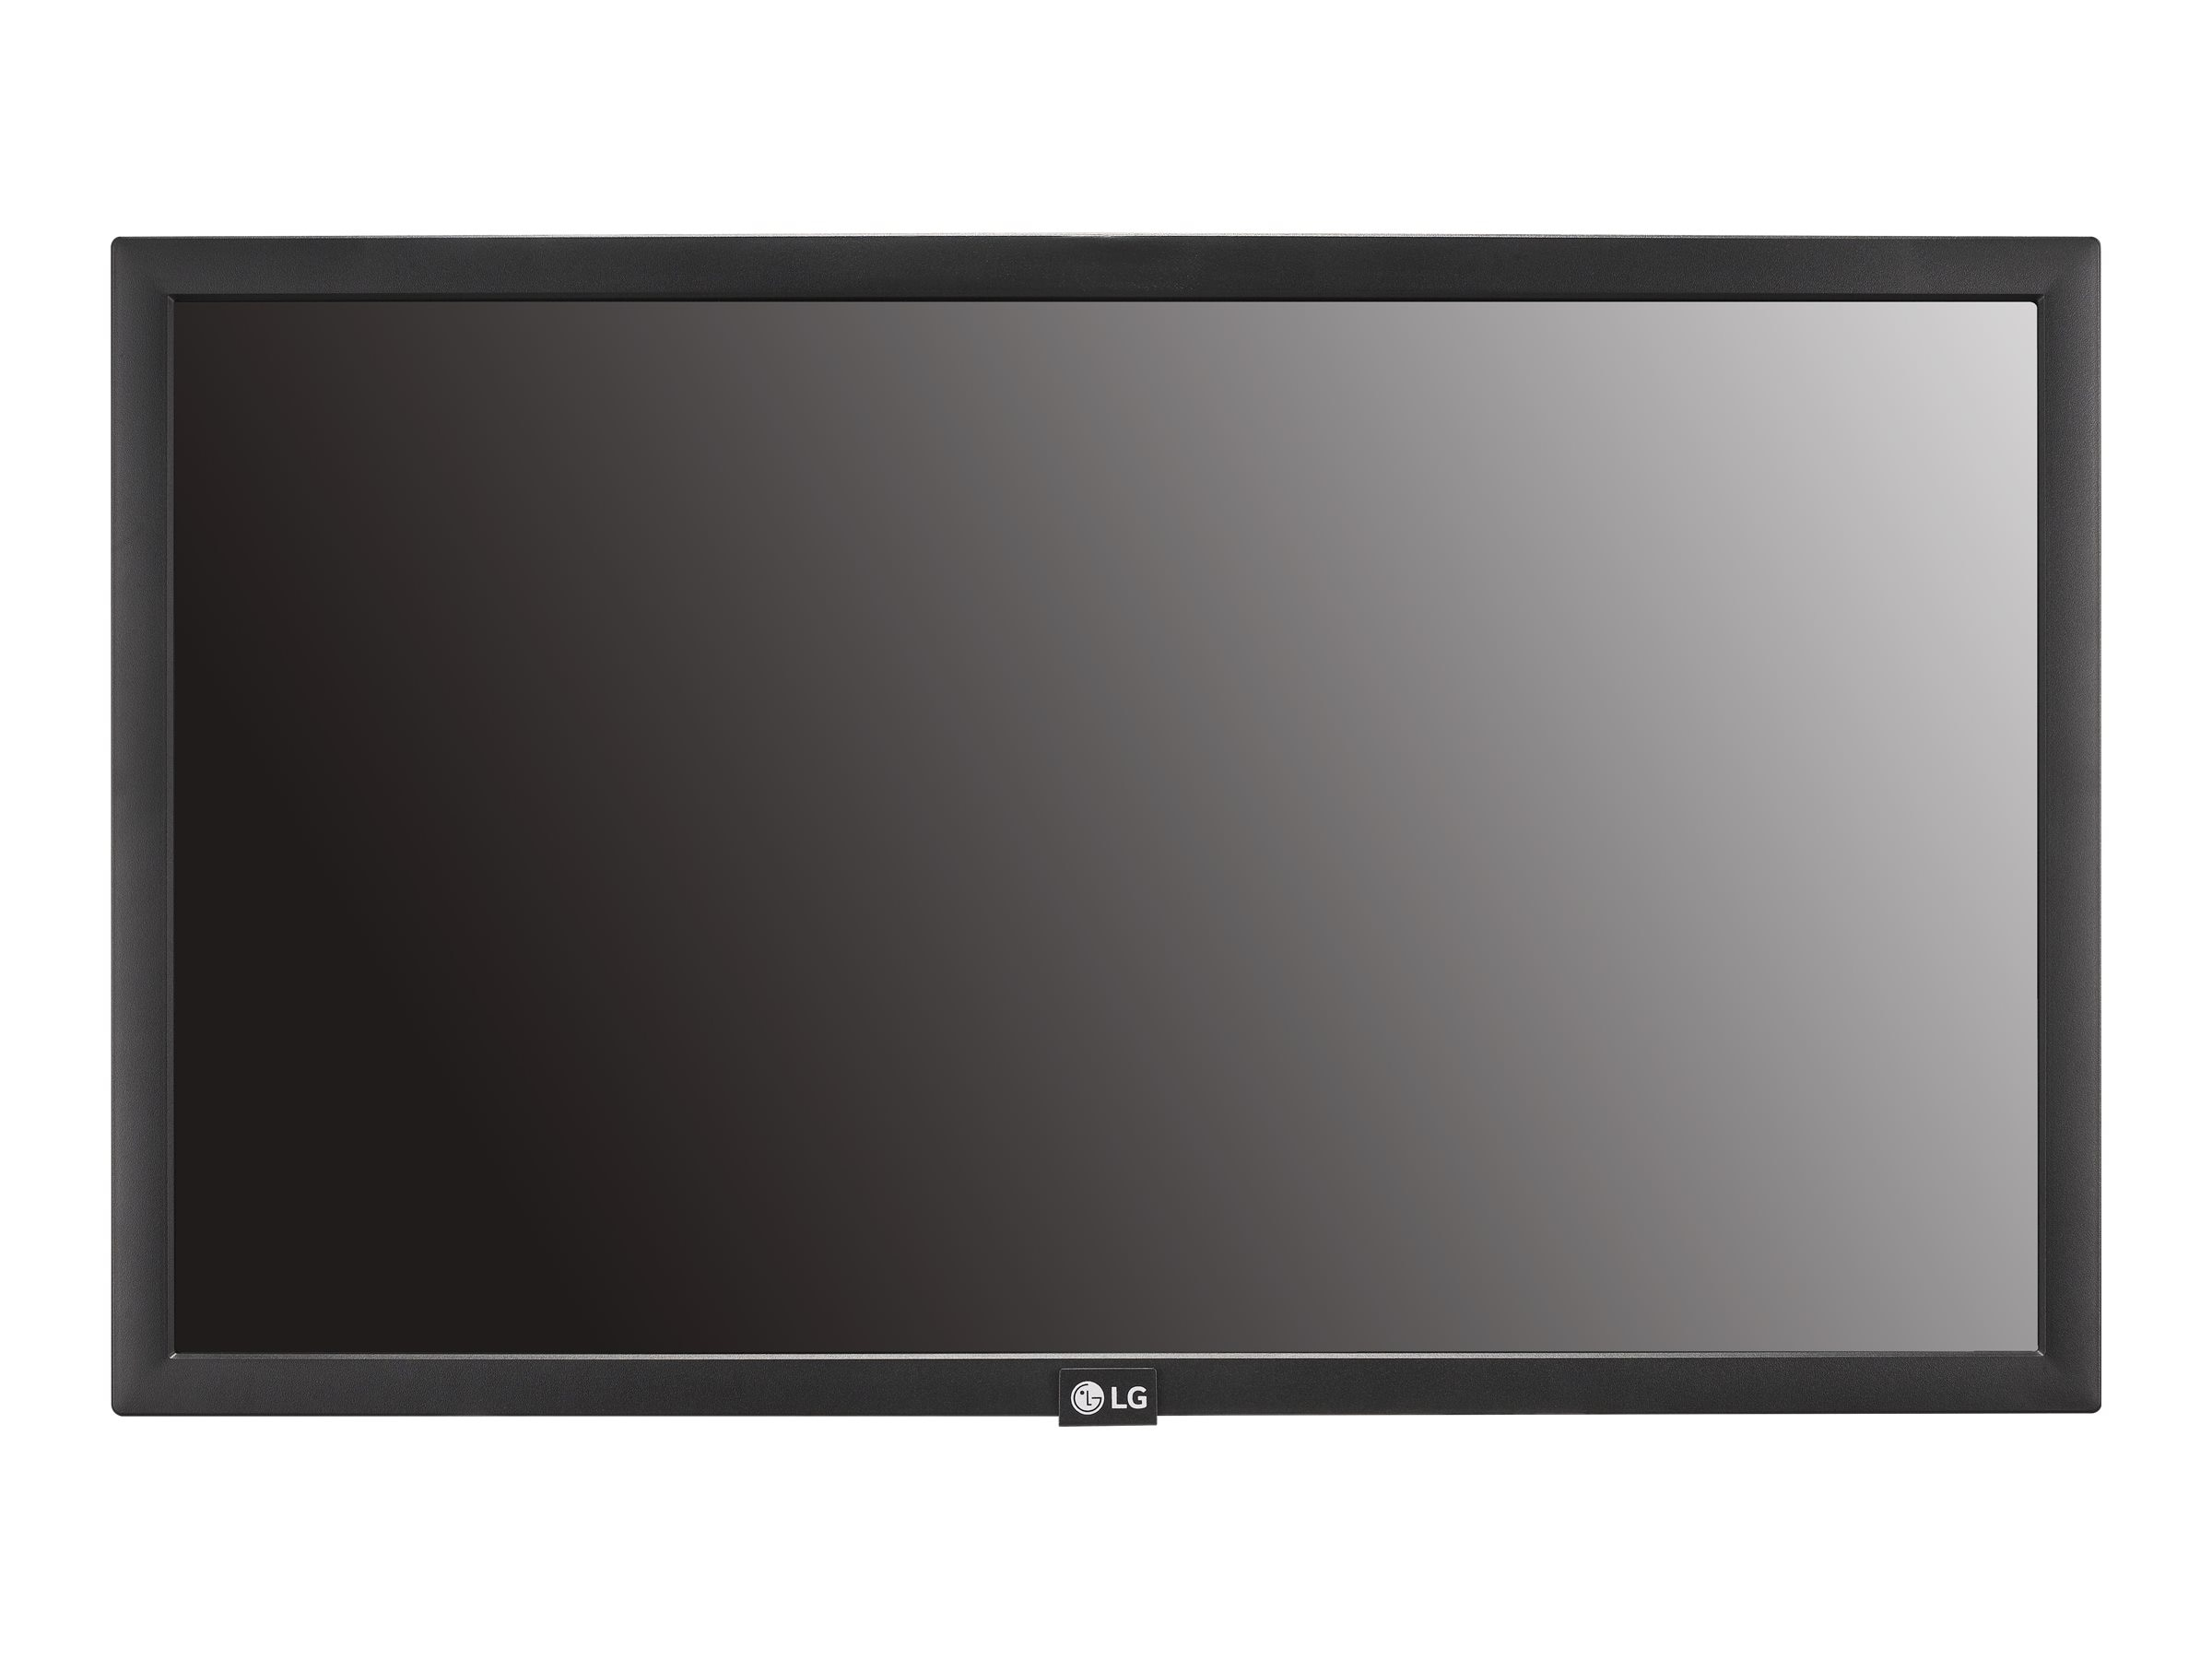 LG 22 SM3B-B Full HD LED-LCD Display, Black, 22SM3B-B, 27870381, Monitors - LED-LCD